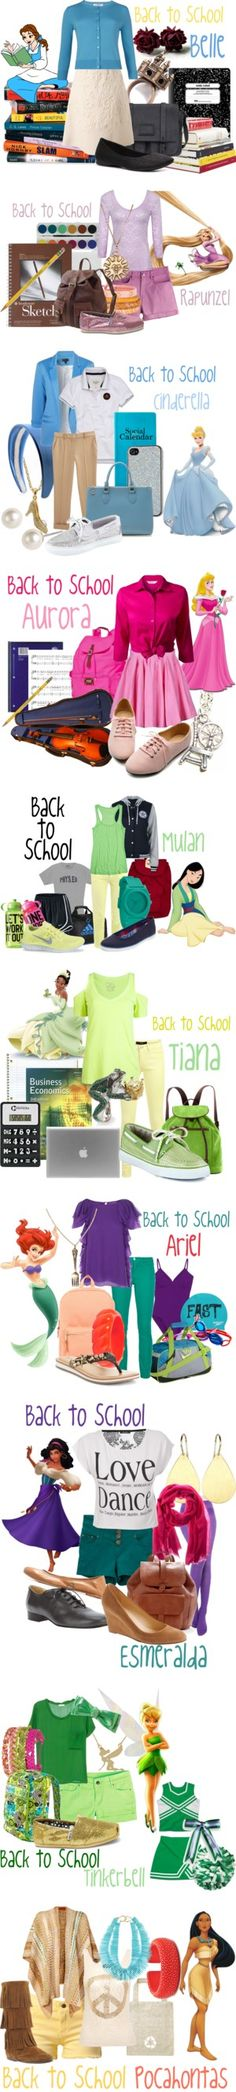 """Disney High School"" by jami1990 ❤ liked on Polyvore"